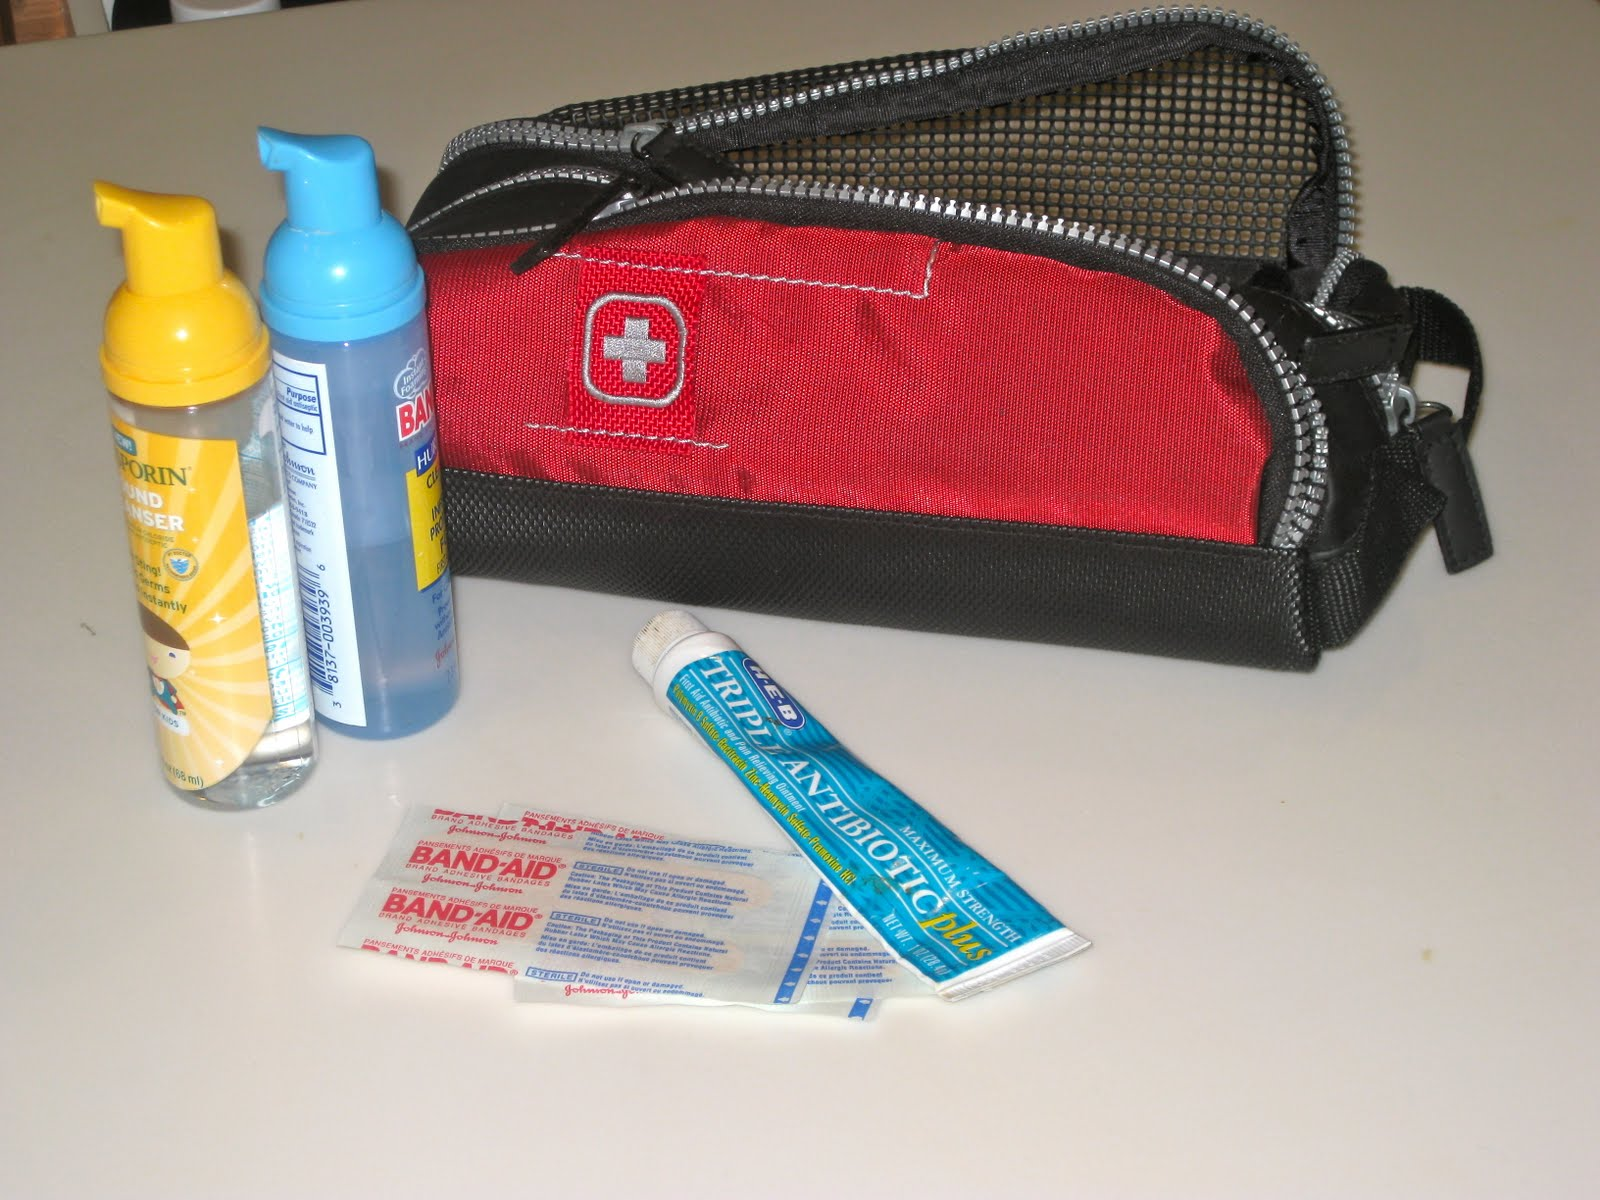 A Doctor's Travel First Aid Kit